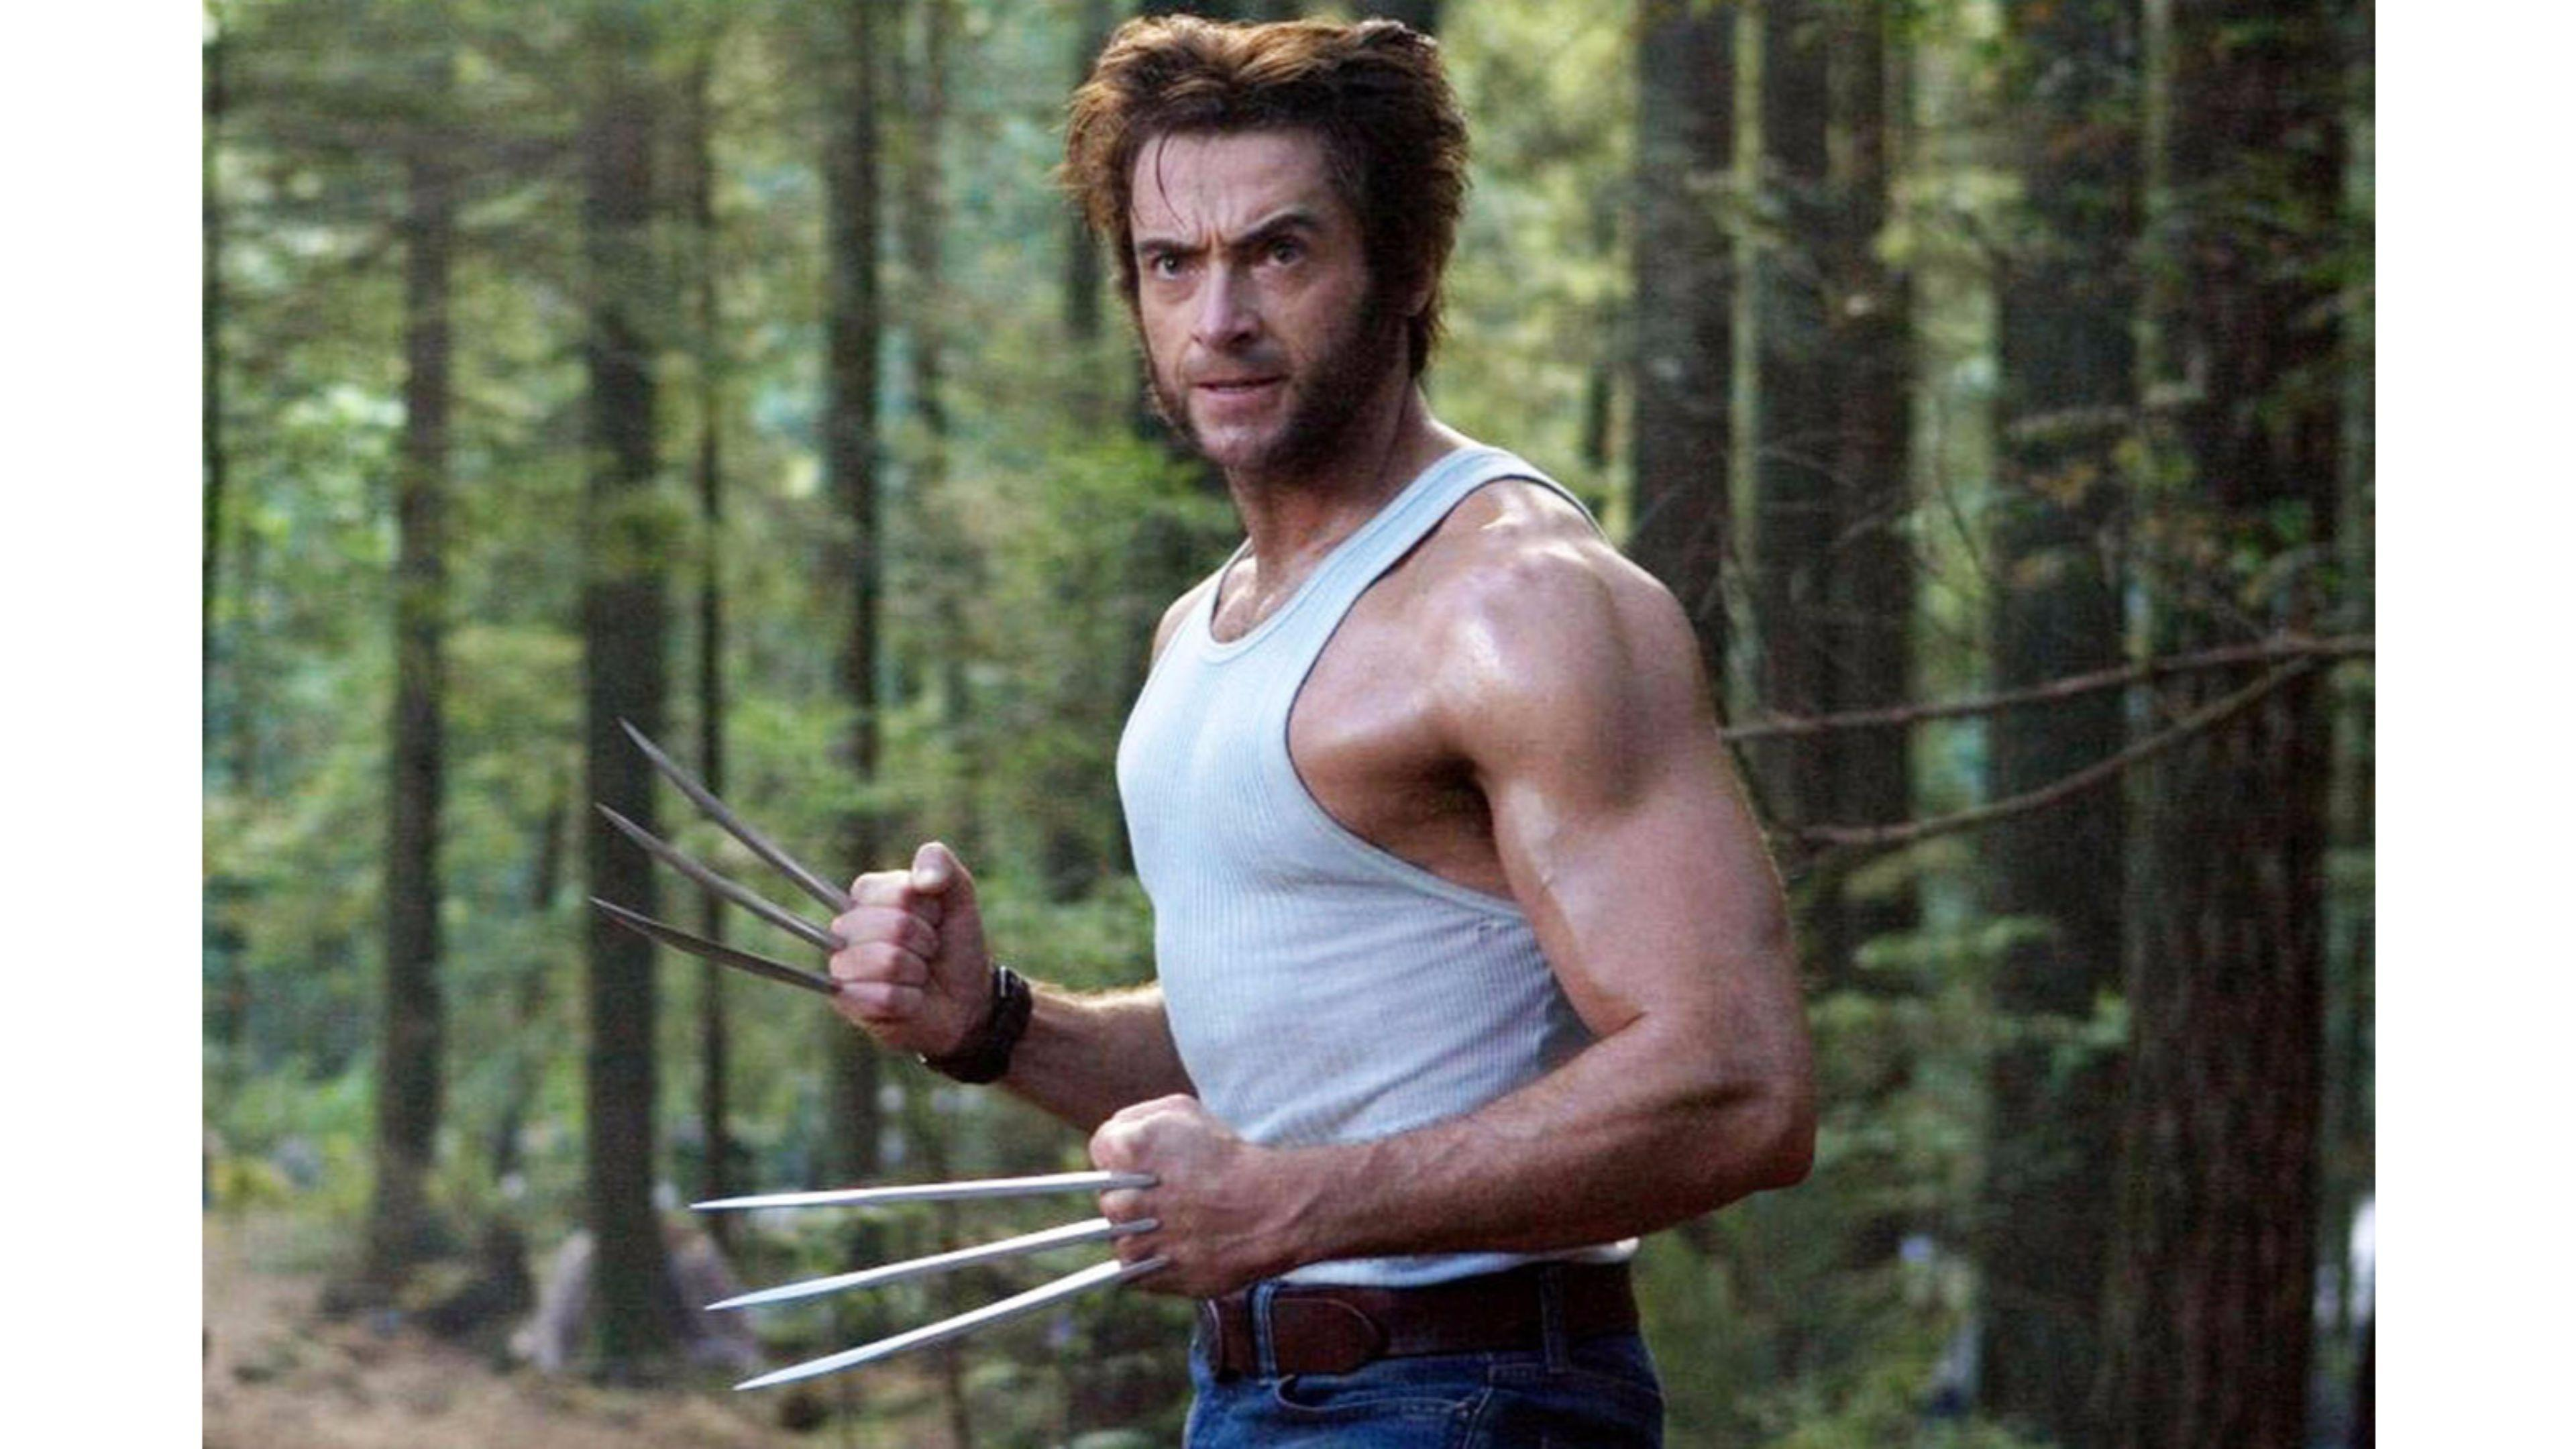 The wolverine 2016 wallpapers wallpaper cave - Wallpaper wolverine 4k ...